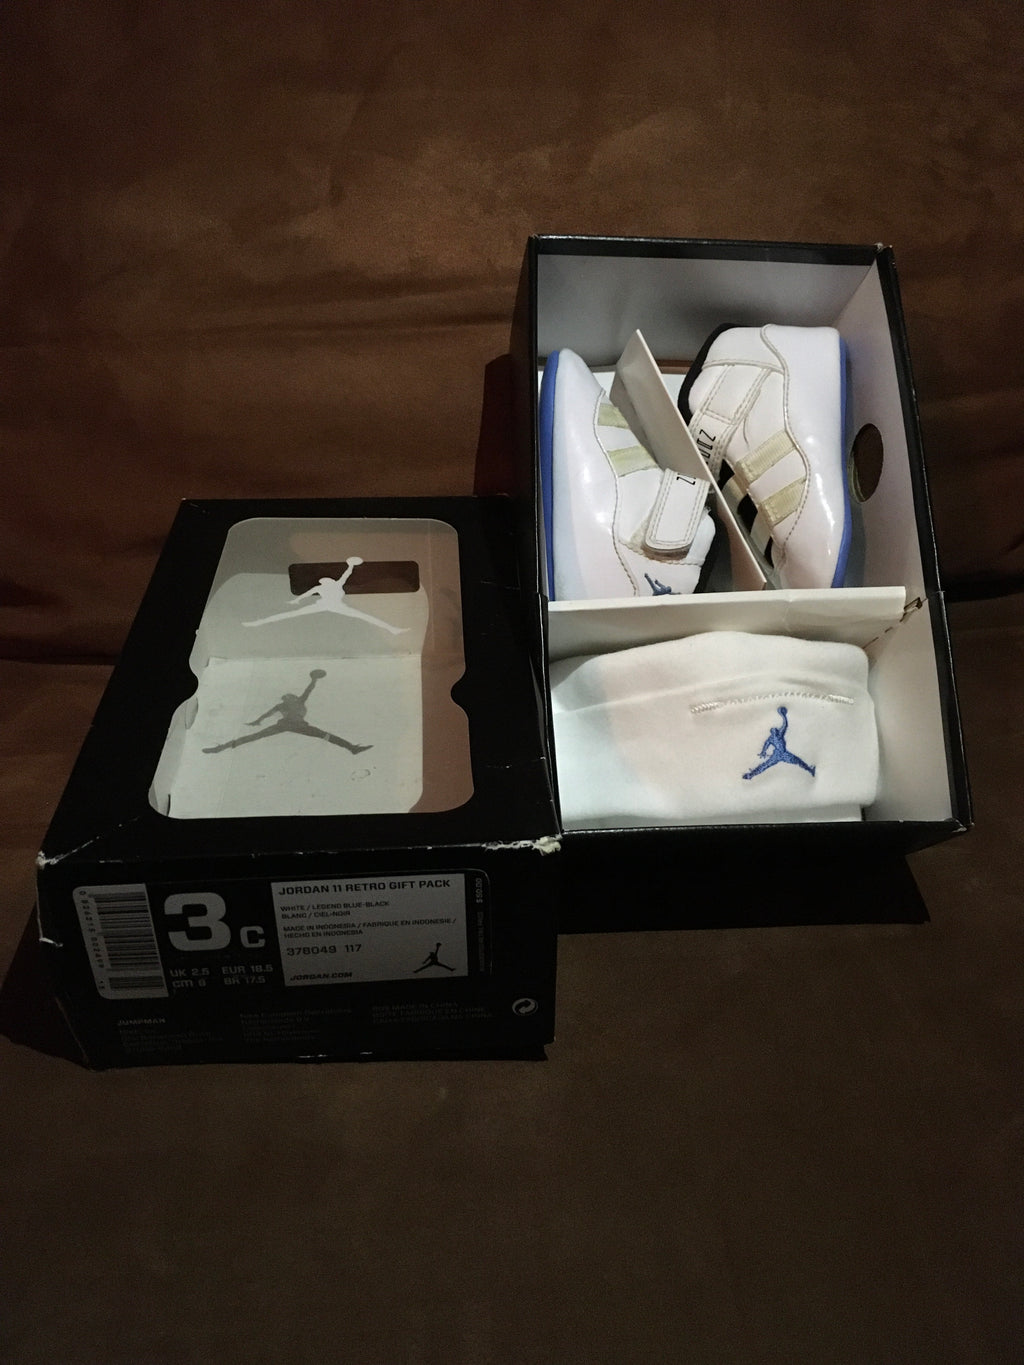 Sz 3C Legend Blue 11s crib set $150 🥰